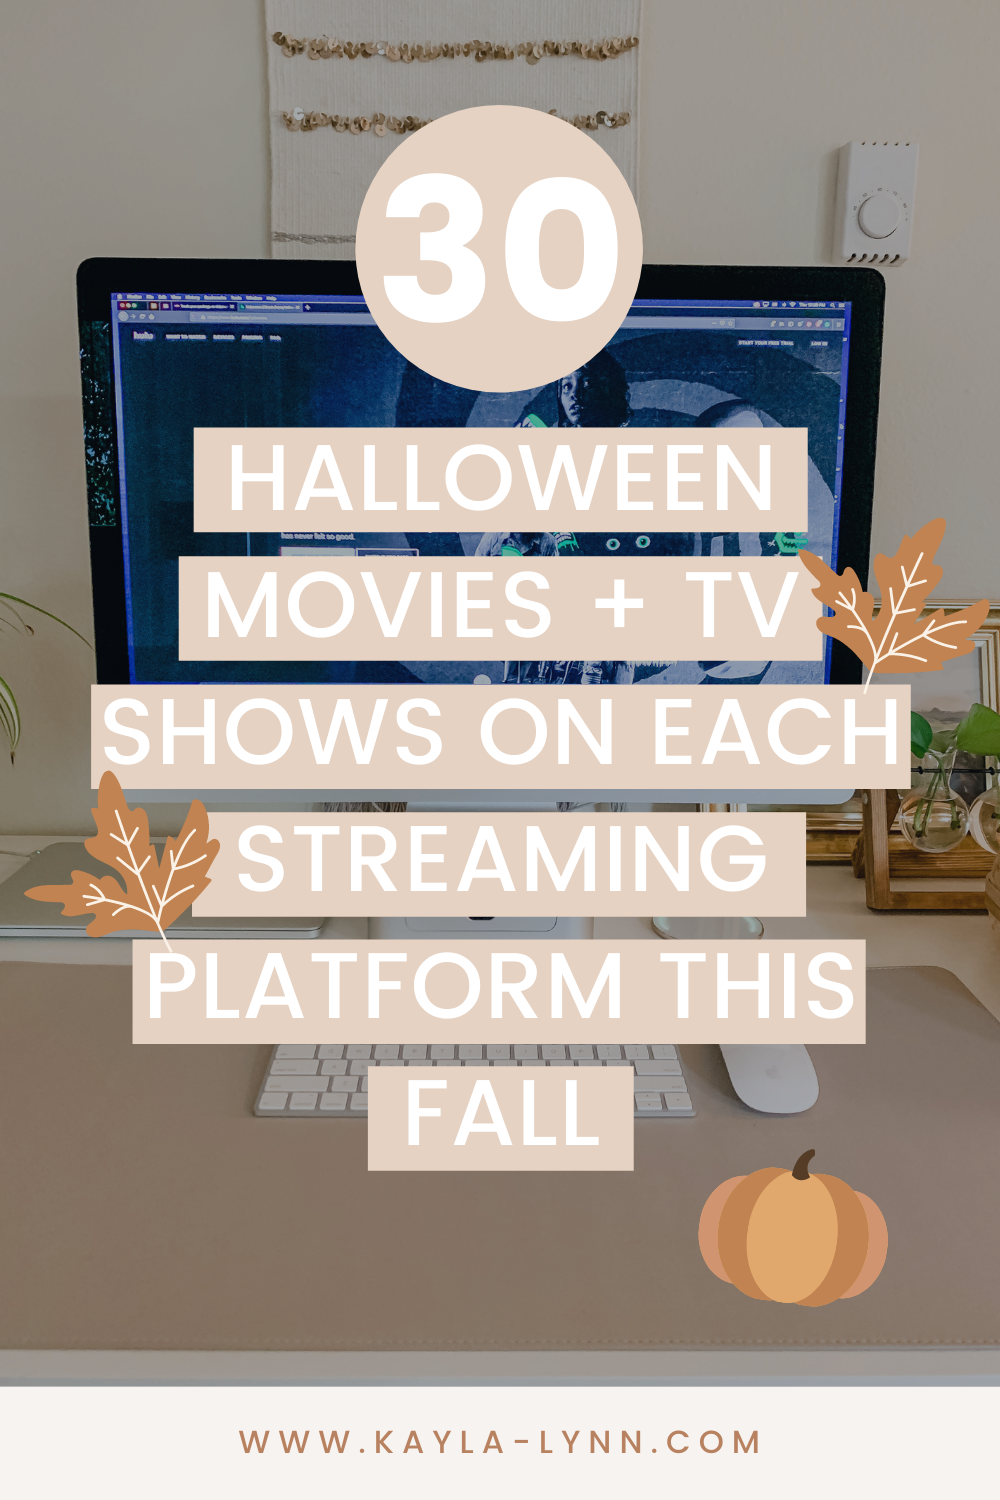 30 Halloween Movies + TV Shows on Each Streaming Platform This Fall Pinterest Image